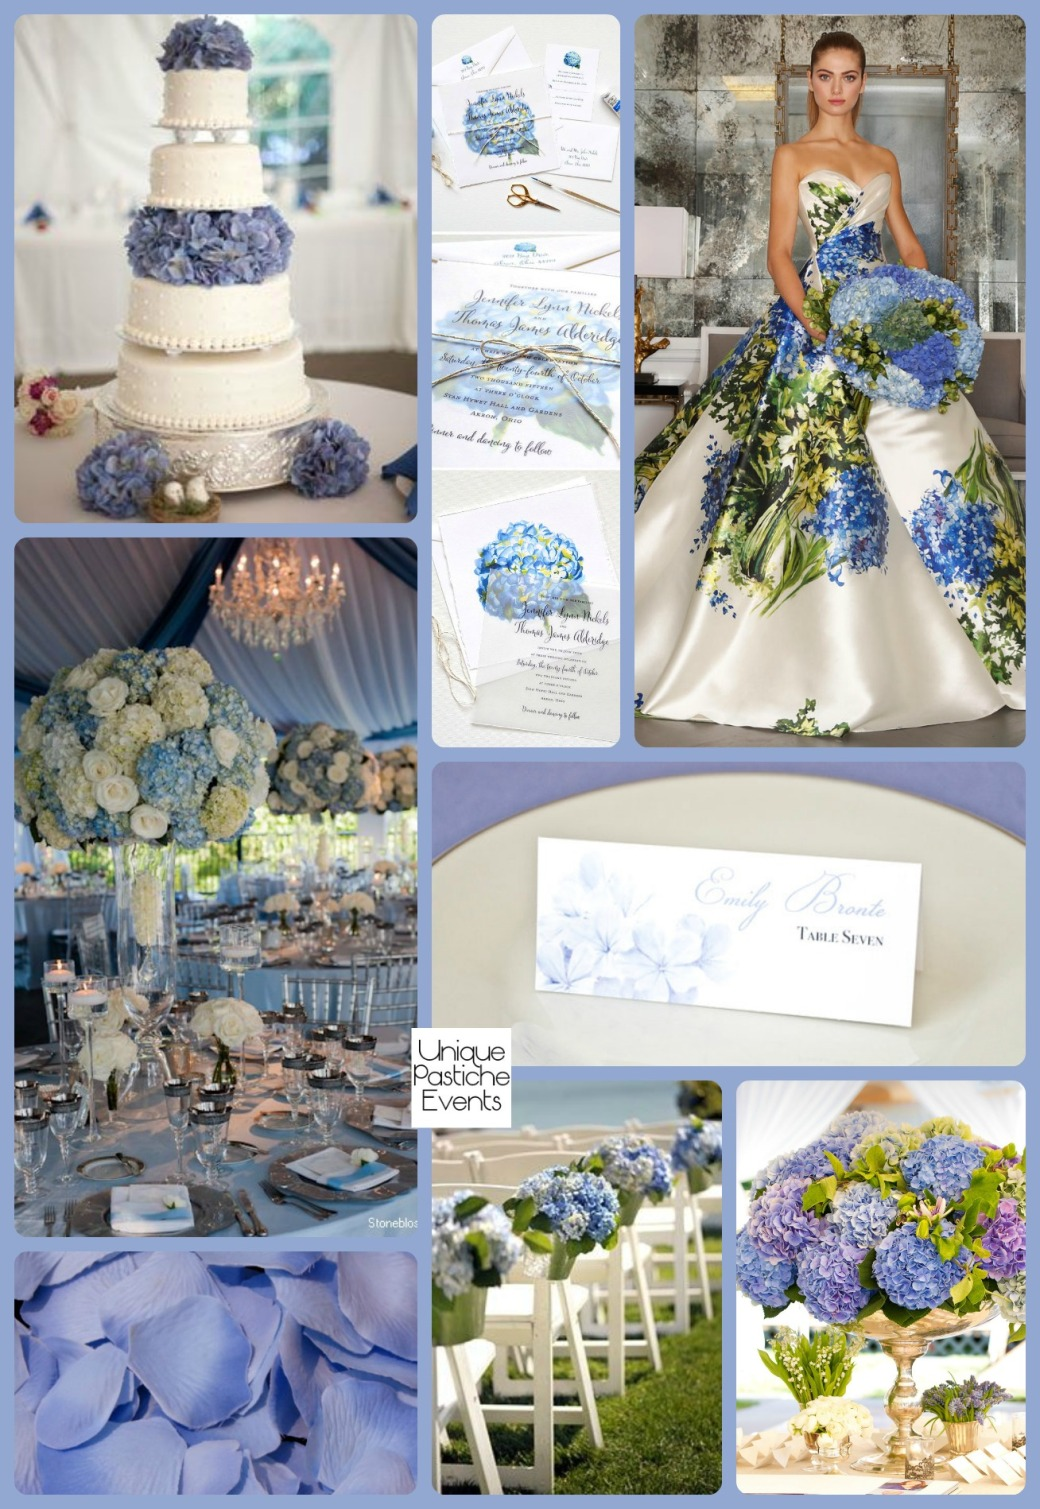 Elaborate Serenity Blue Hydrangea Wedding Ideas by Unique Pastiche Events Read the full post: https://uniquepasticheevents.com/2016/01/06/elaborate-serenity-blue-hydrangea-wedding-ideas/